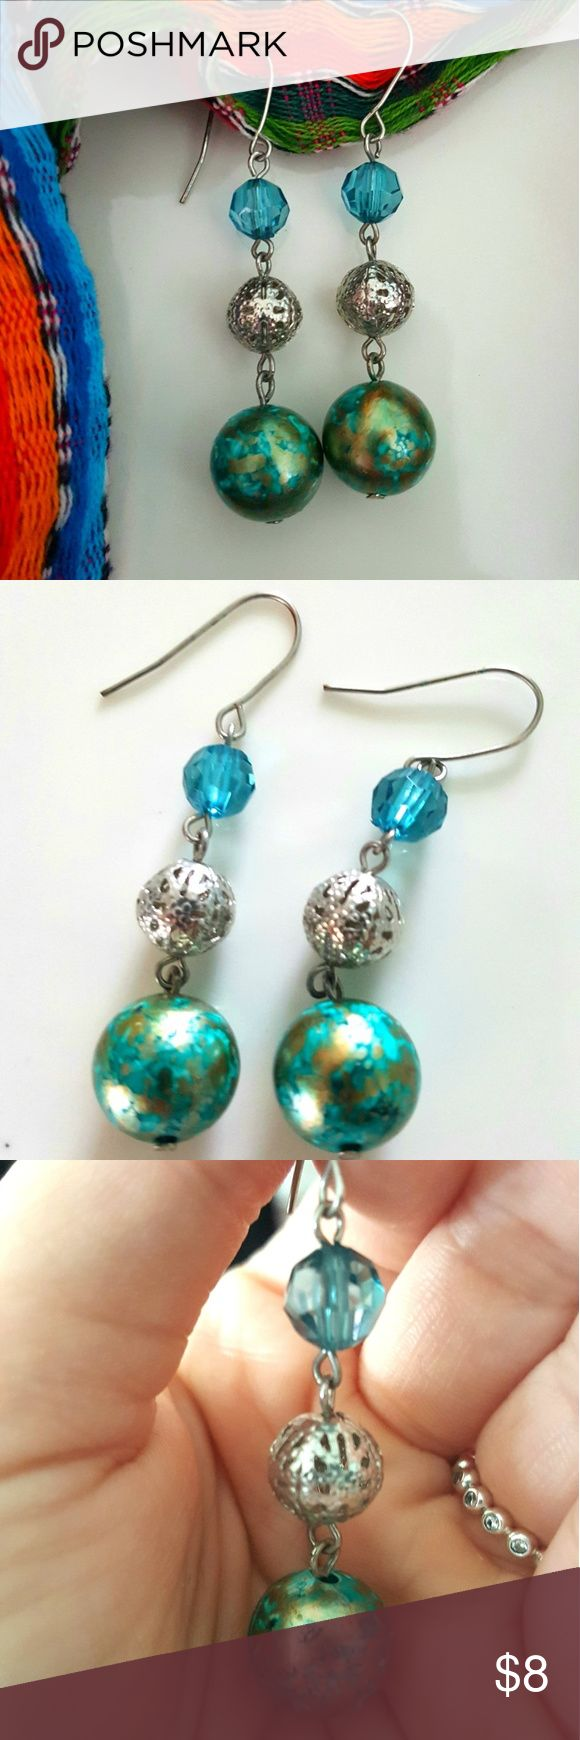 Beautiful Teal And Silver Colored Earrings